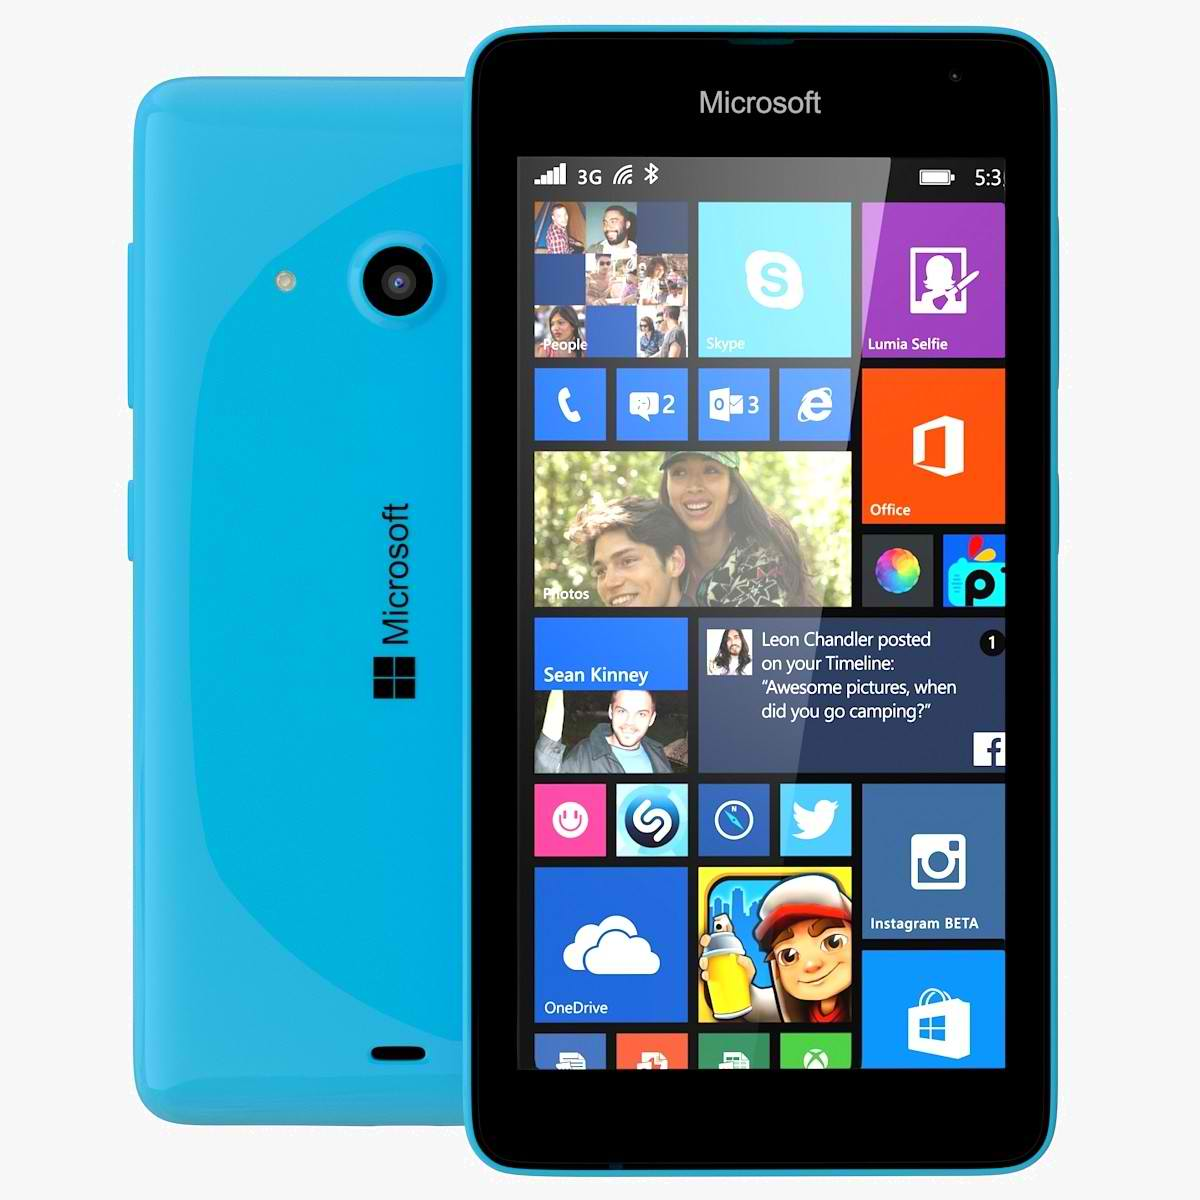 Lumia 535 a triplat vanzarile de smartphone-uri Windows Phone in Pakistan